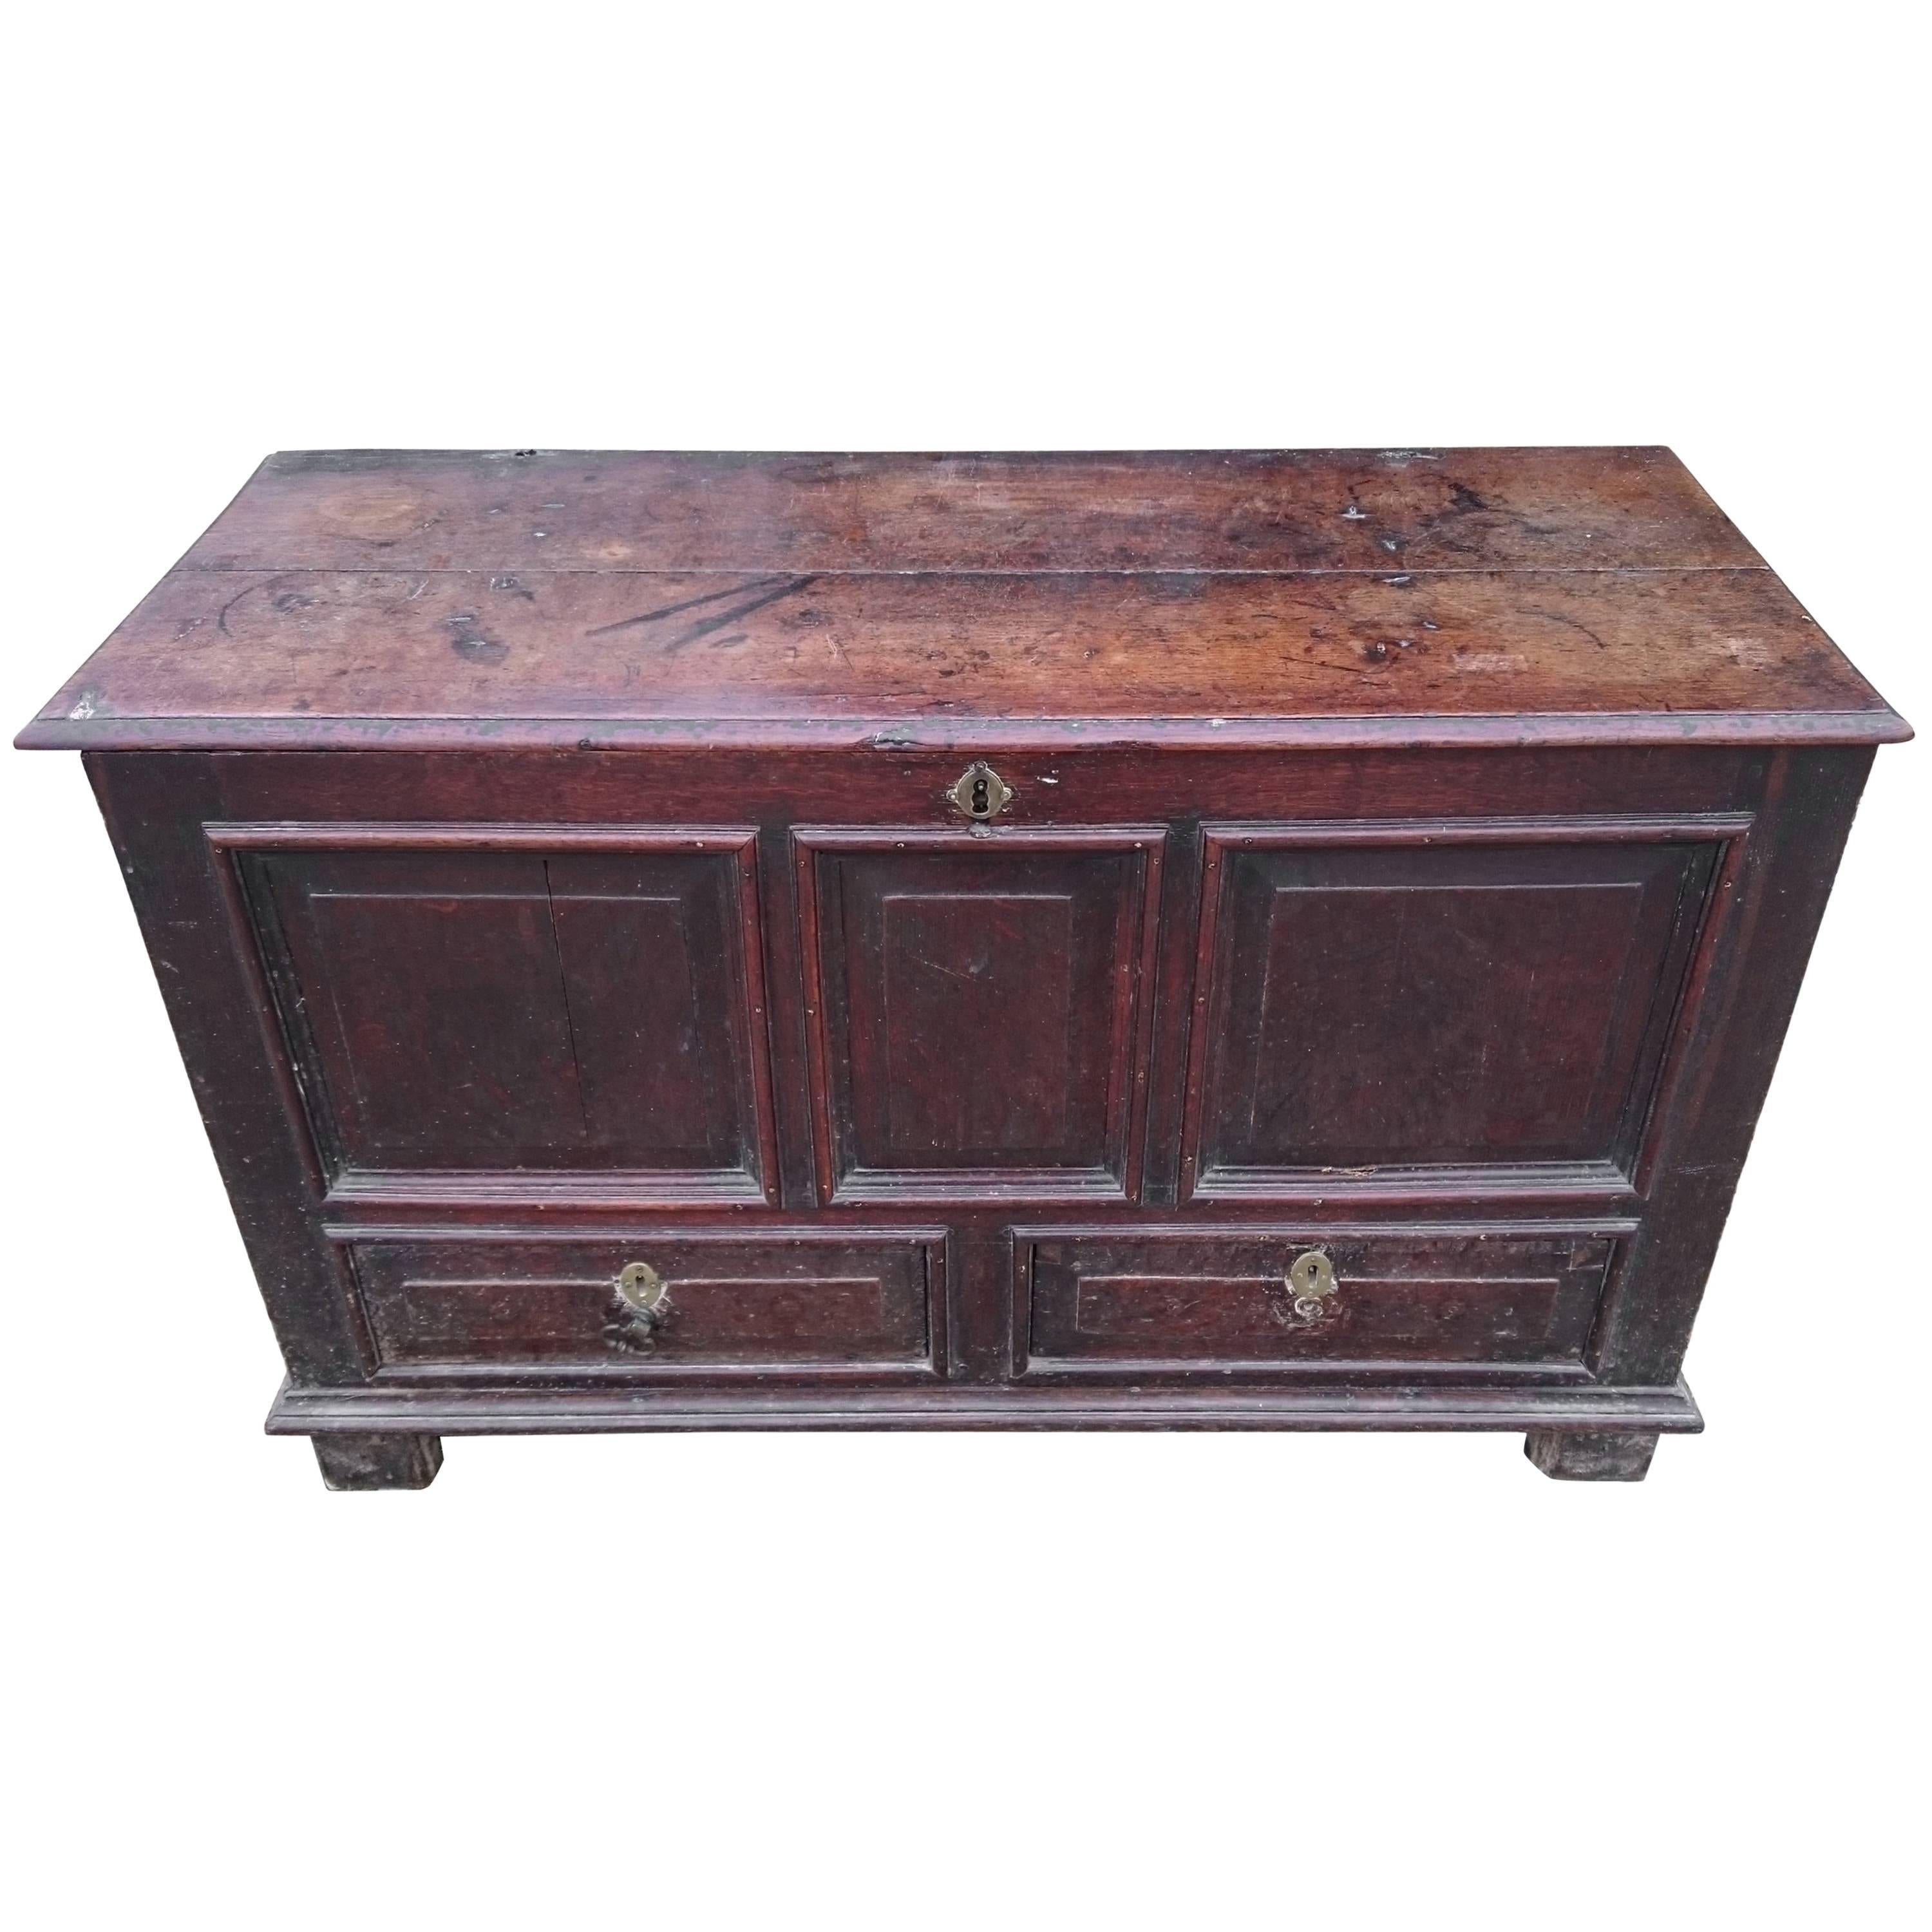 Early 18th Century Antique Mule Chest